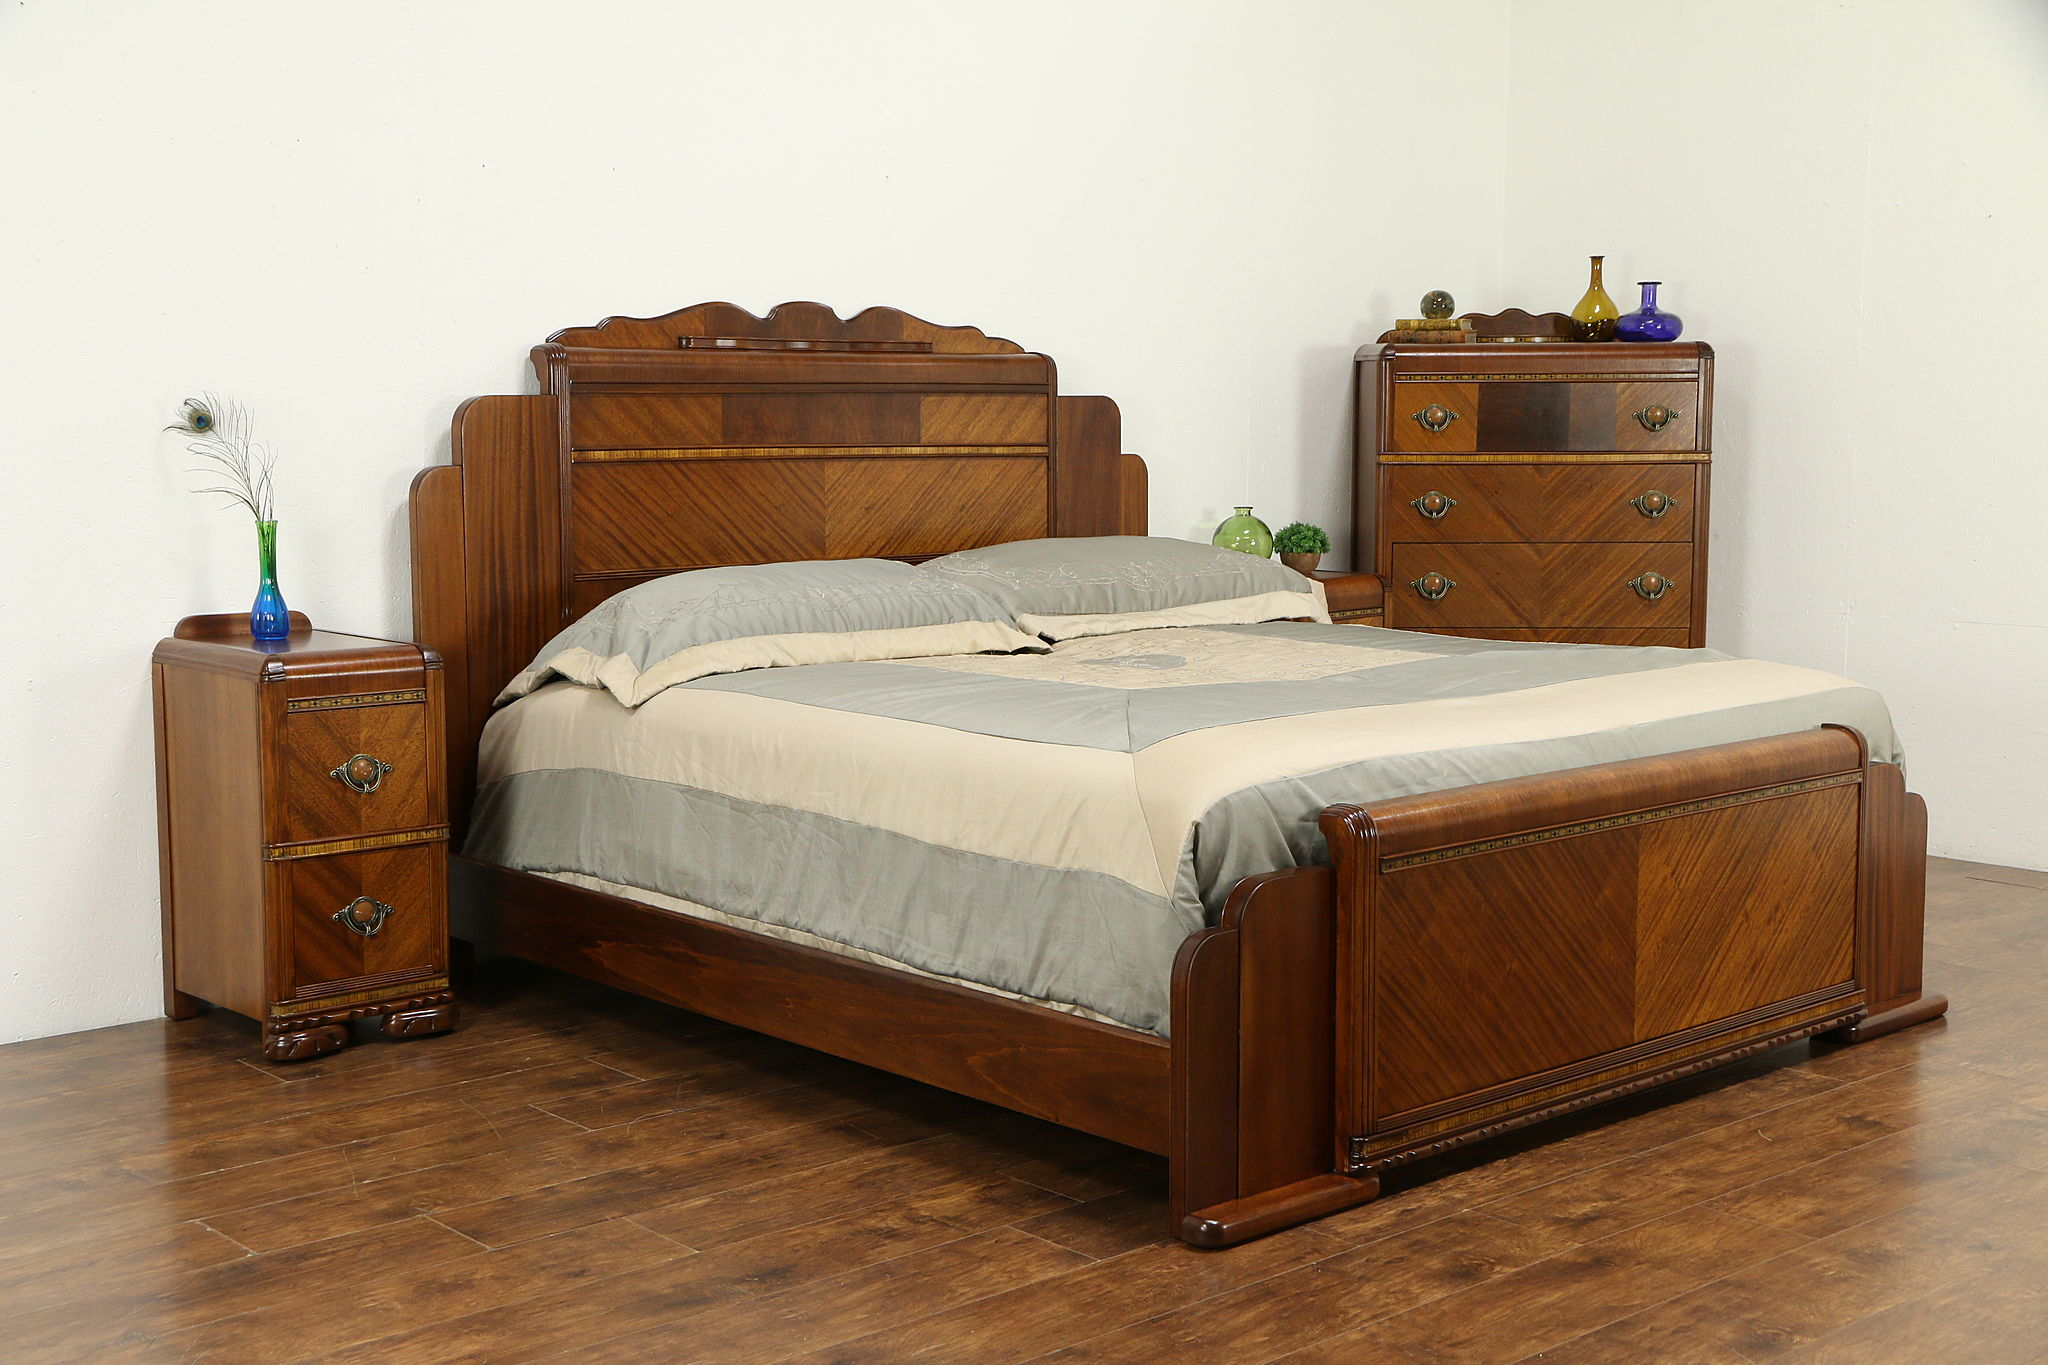 Art Deco Waterfall 1930\'s Vintage 4 Pc. Bedroom Set, King Size Bed #32673